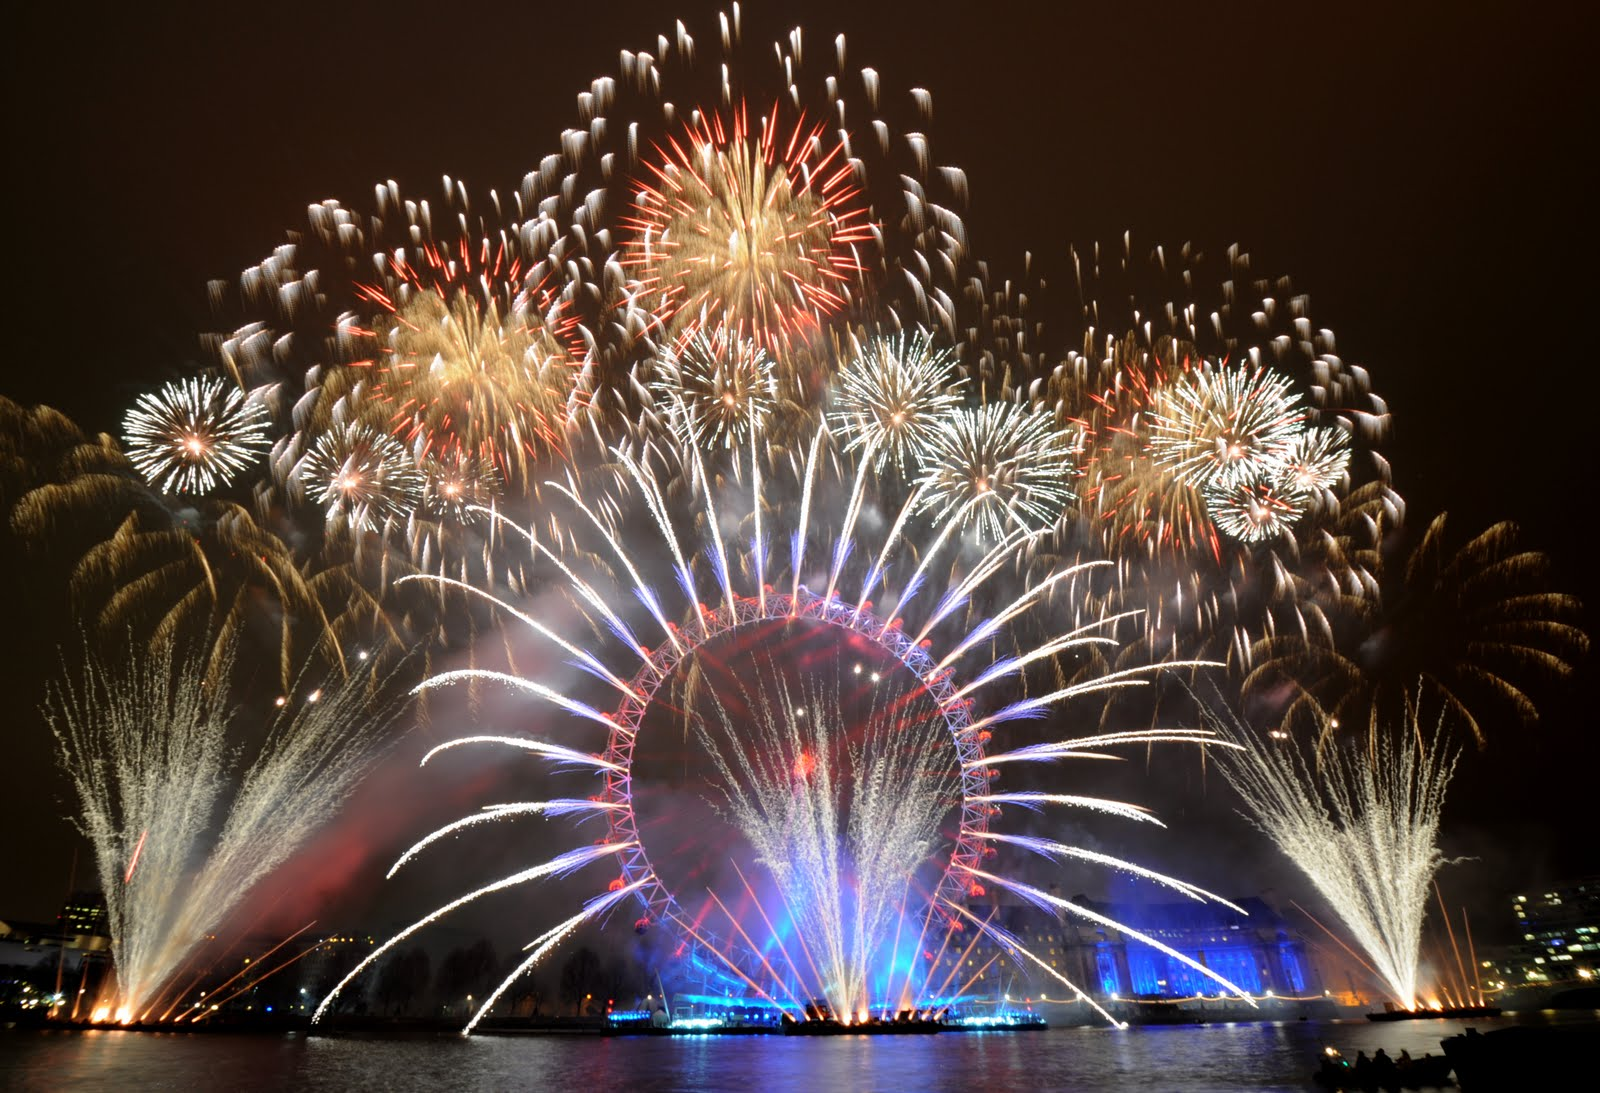 London New Years Eve Fireworks Video 2014 / 2015